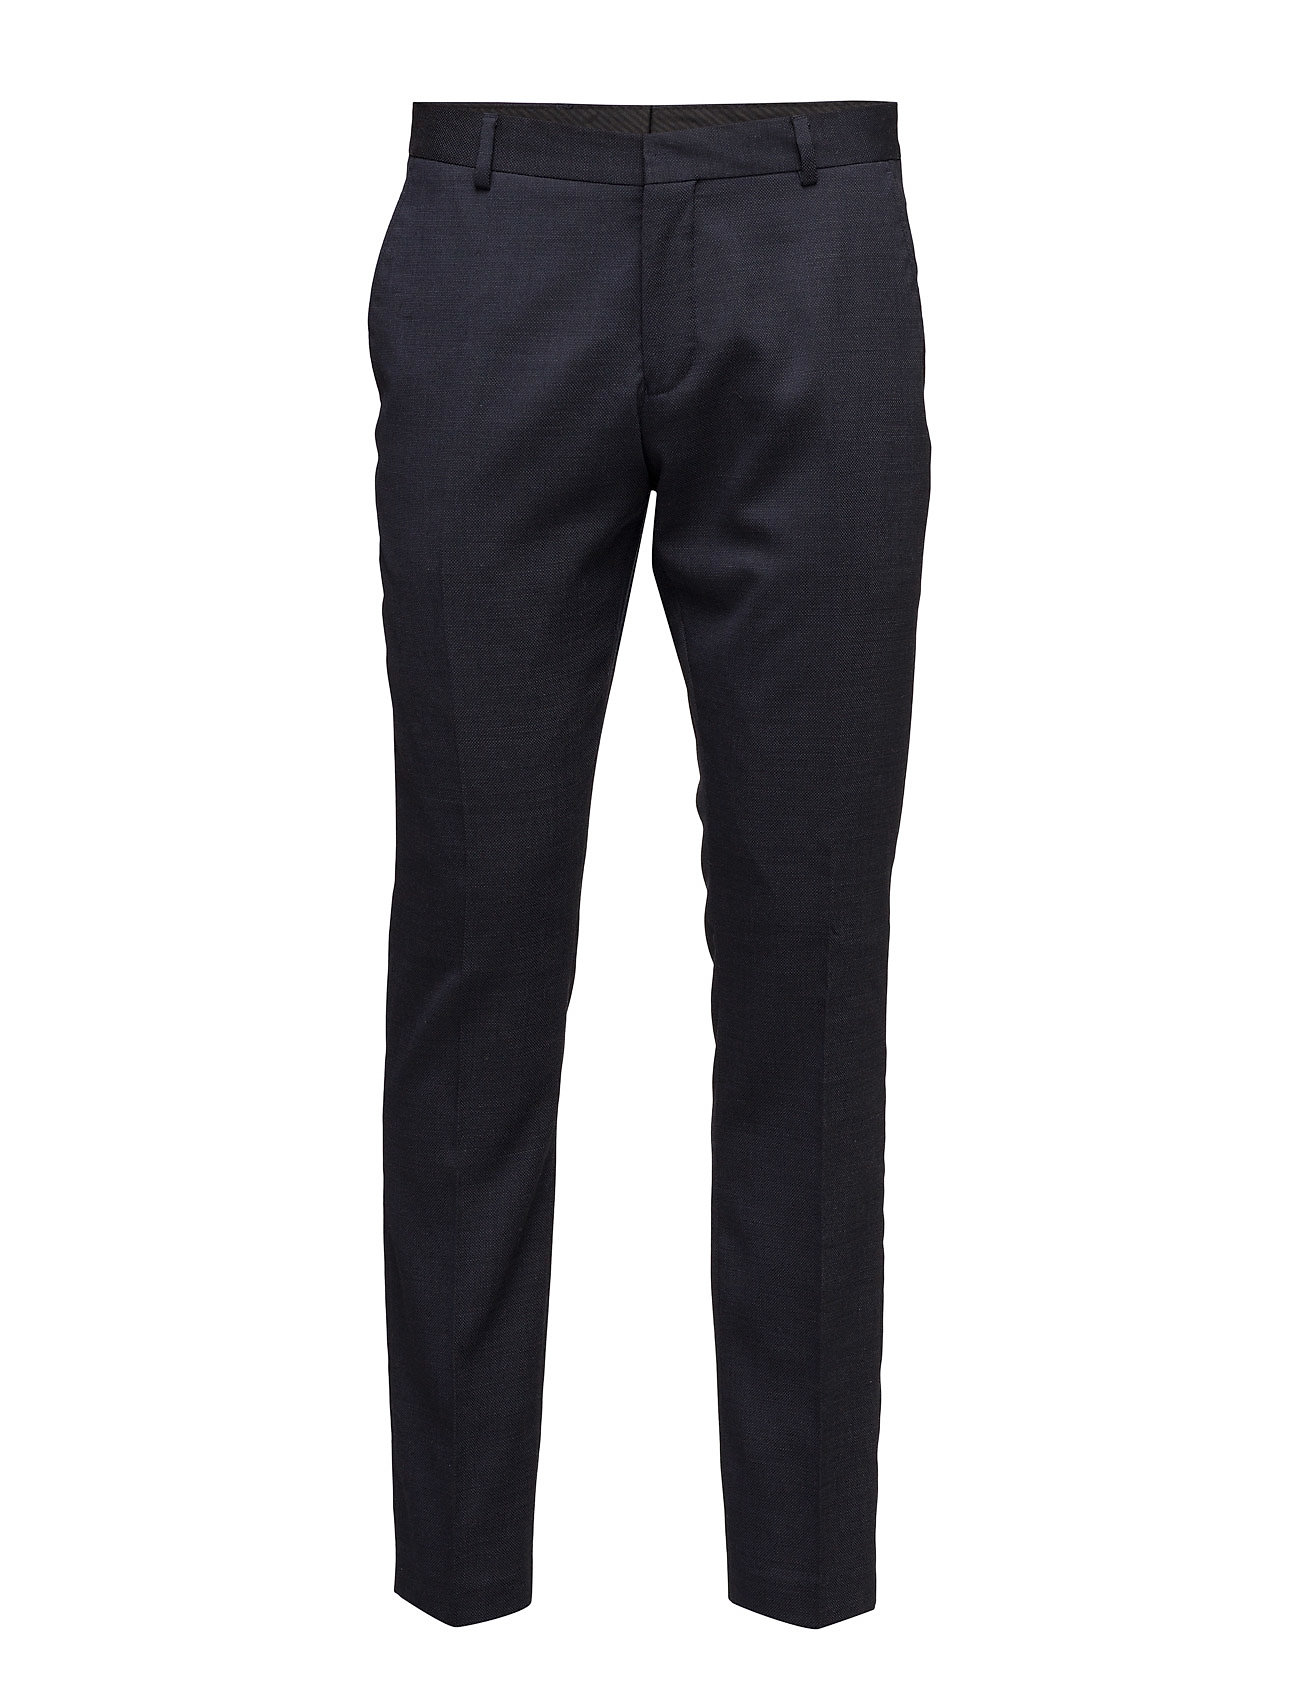 Selected Homme SLHSLIM-MYLOREX DK NAVY TROUSER B NOOS - DARK NAVY